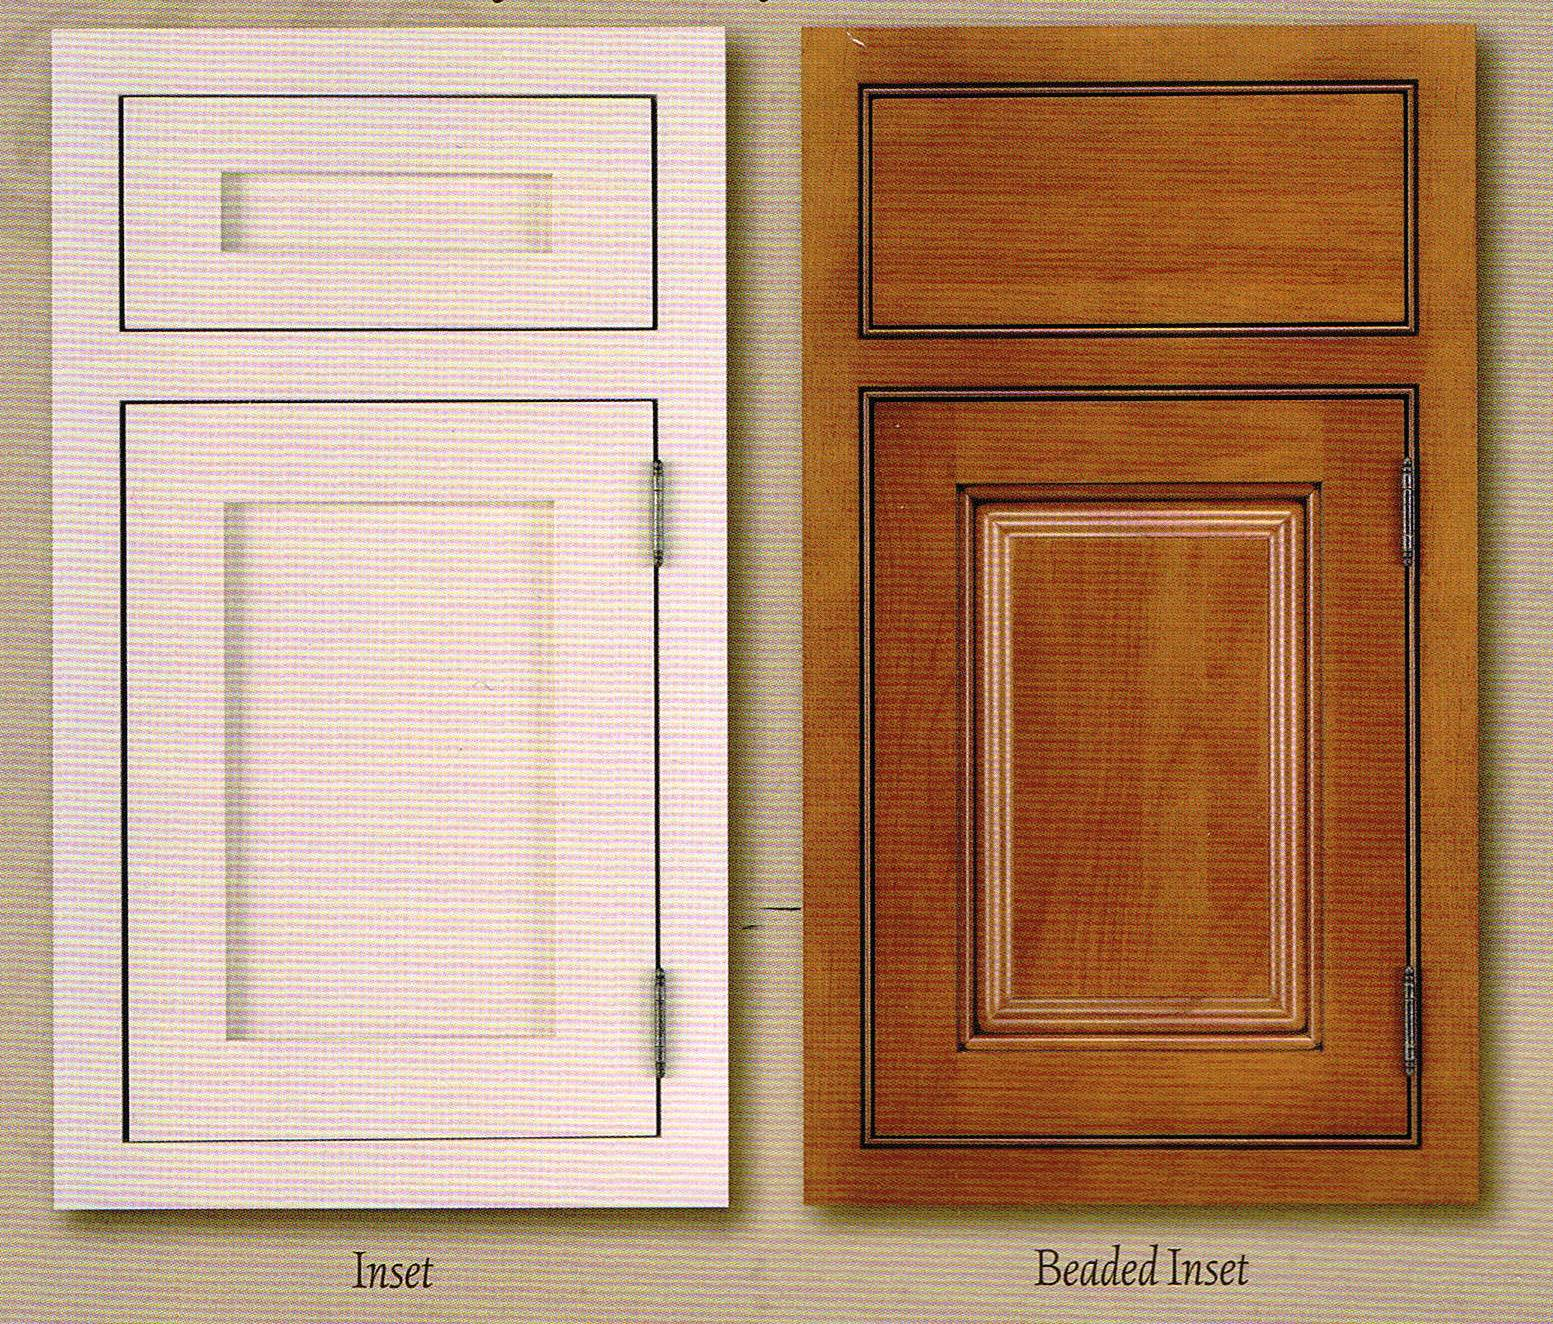 Cabinetry with inset drawers and doors cabinet doors for Kitchen cabinets vs drawers